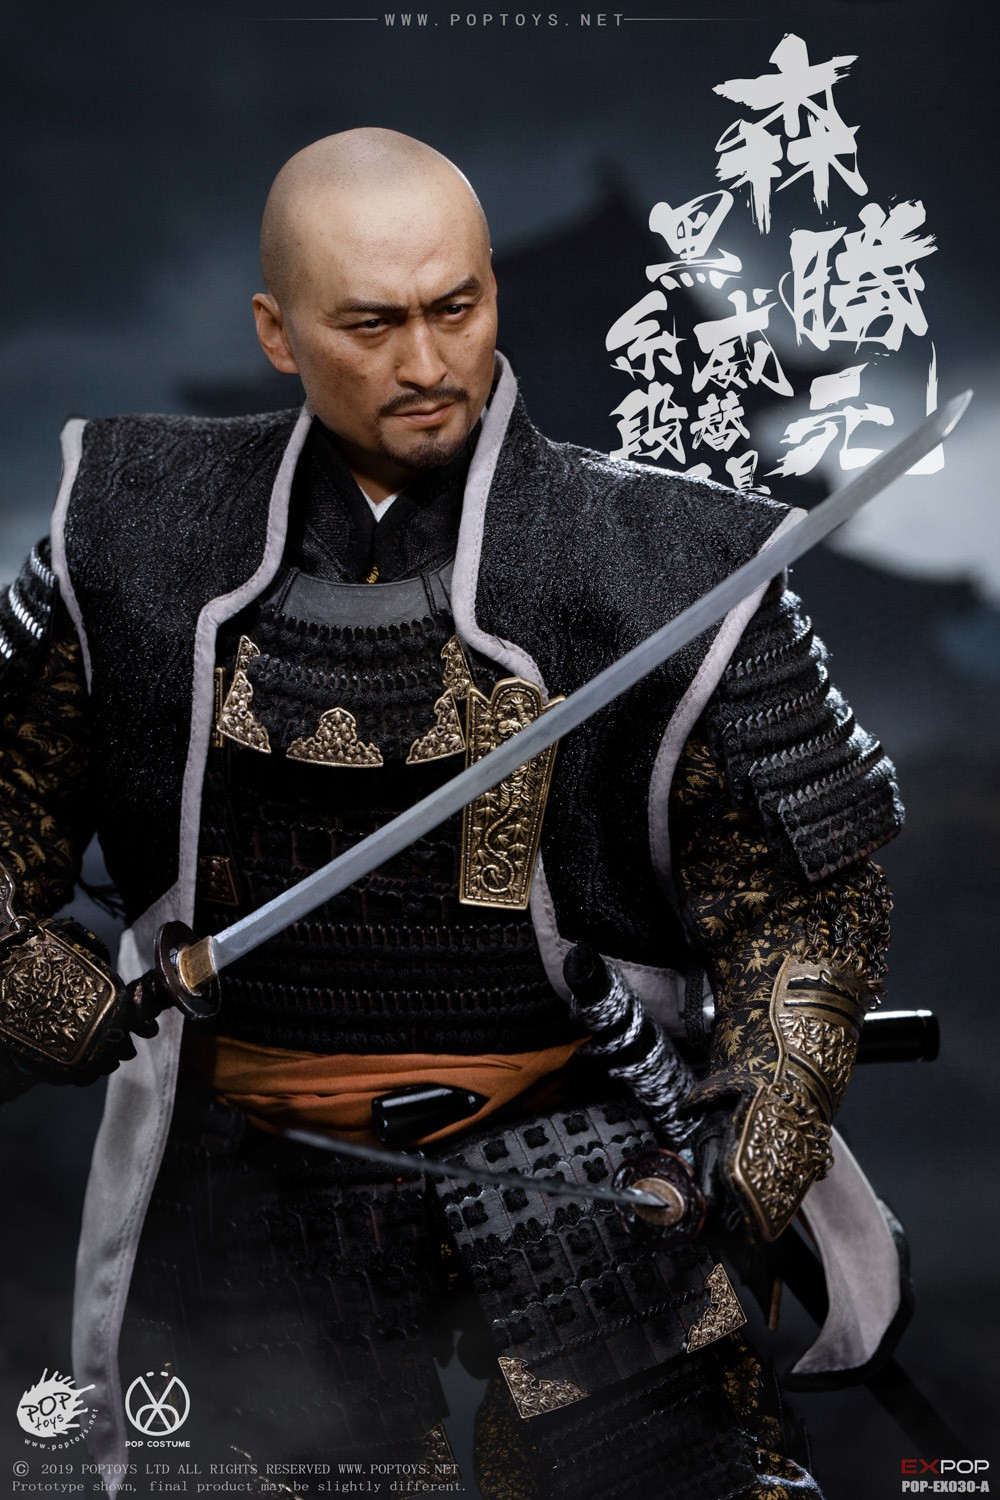 japanese - NEW PRODUCT: PopToys: 1/6 Benevolent Samurai EX30 Standard Edition/Deluxe Edition/Petition Edition [A piece of material 100% alloy] 16331810